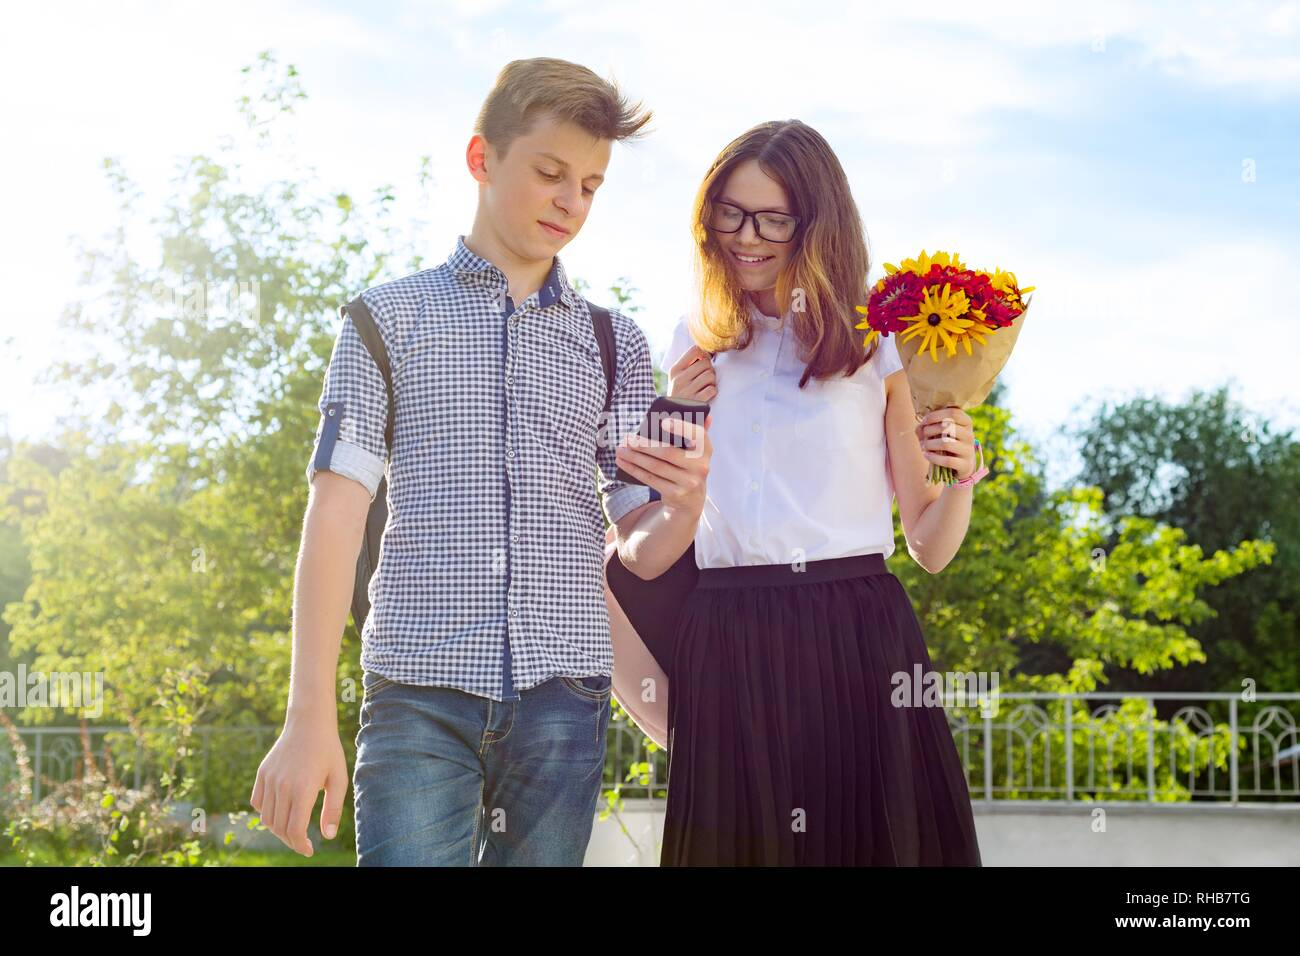 Back to school, Children teenagers go first day to school, with bouquet of flowers, smile, talk - Stock Image